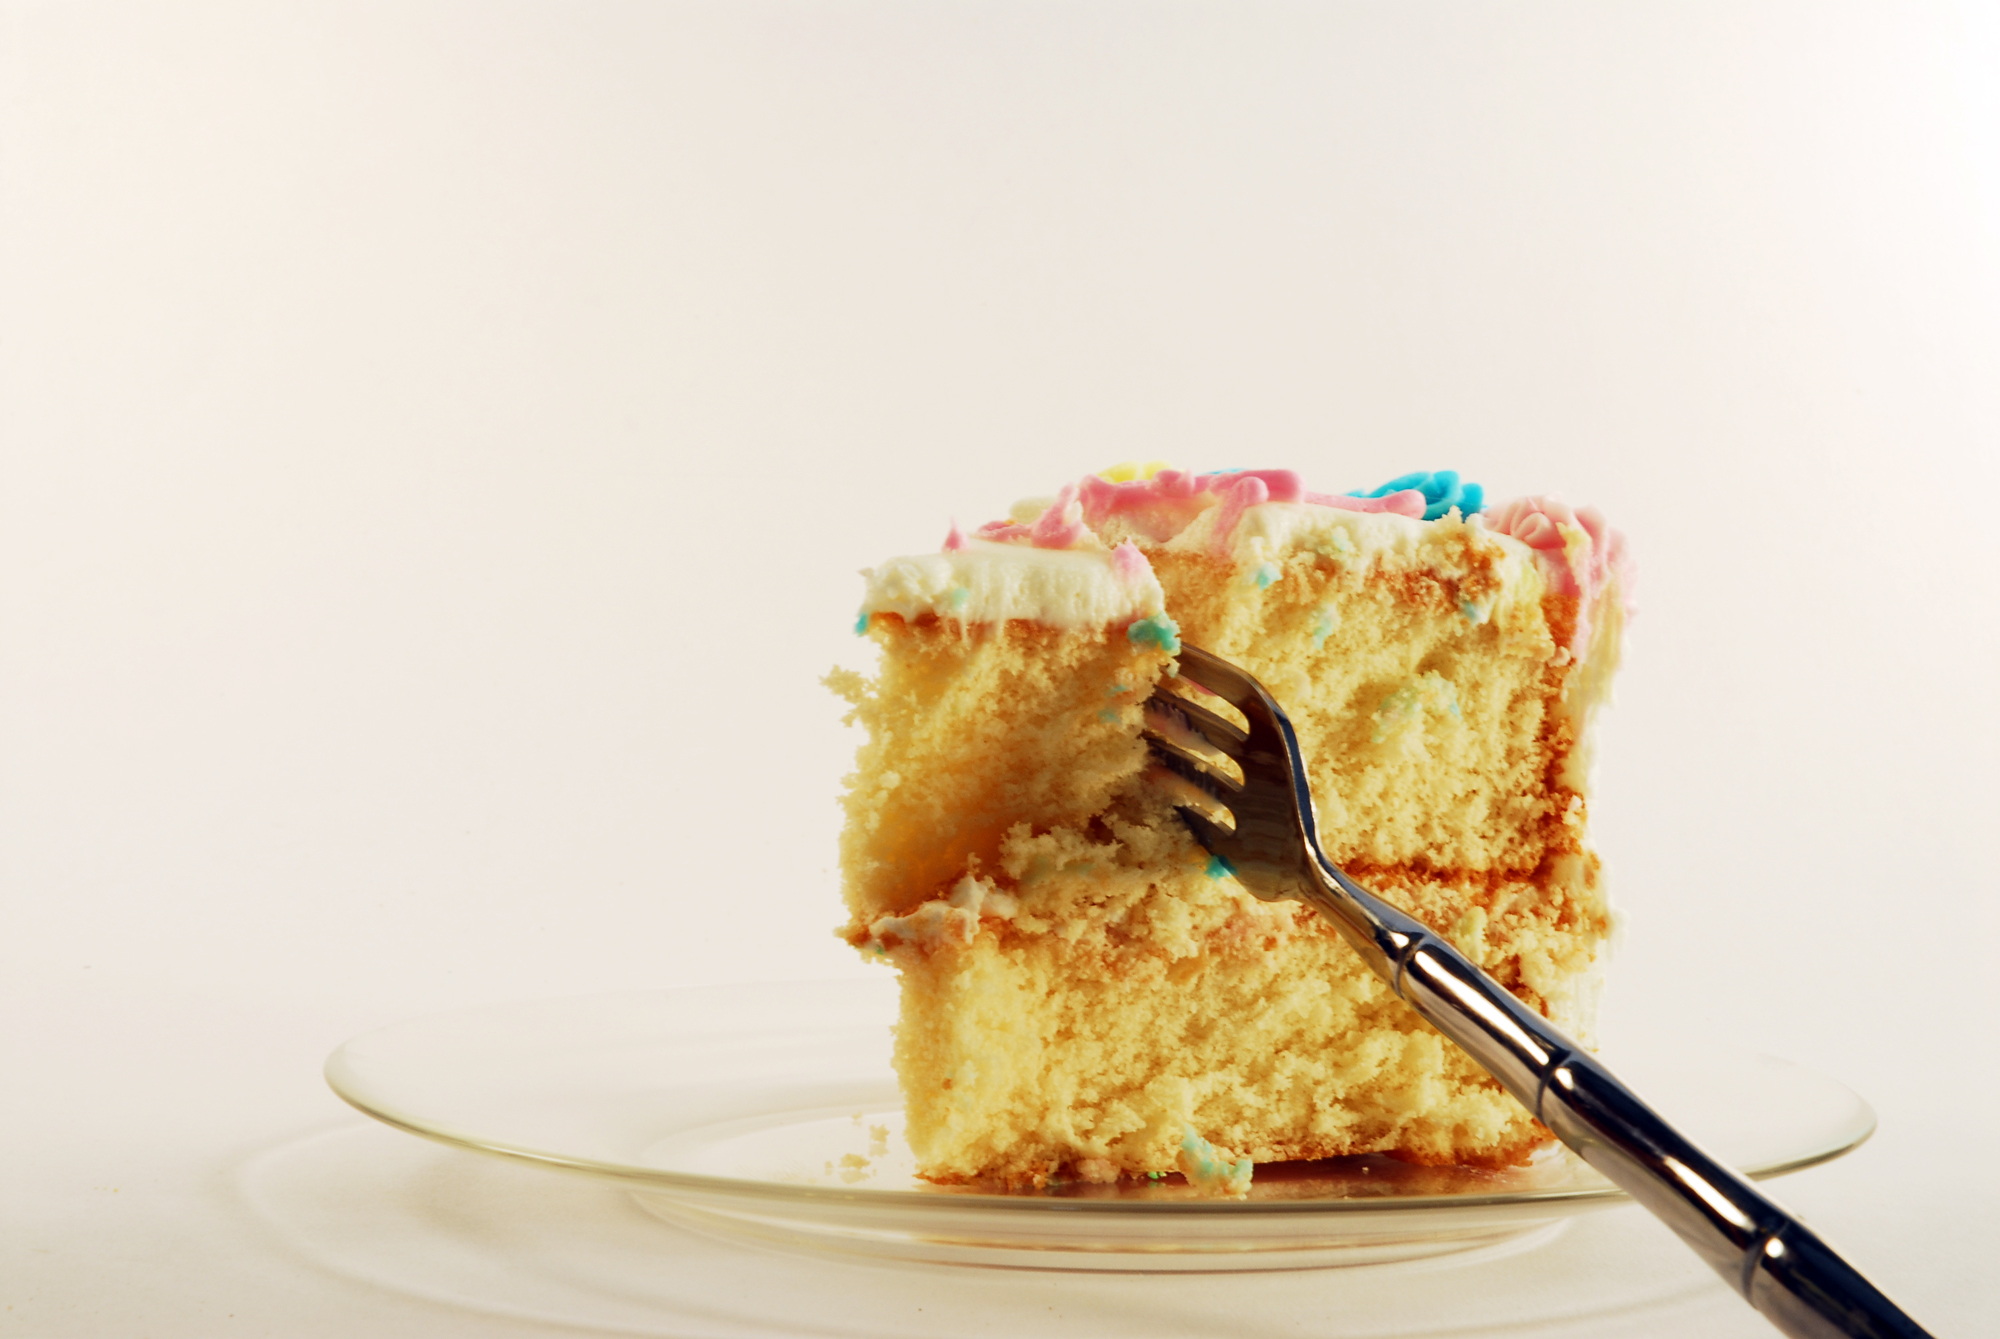 Have Your Cake and Eat It Too with Monthly Giving